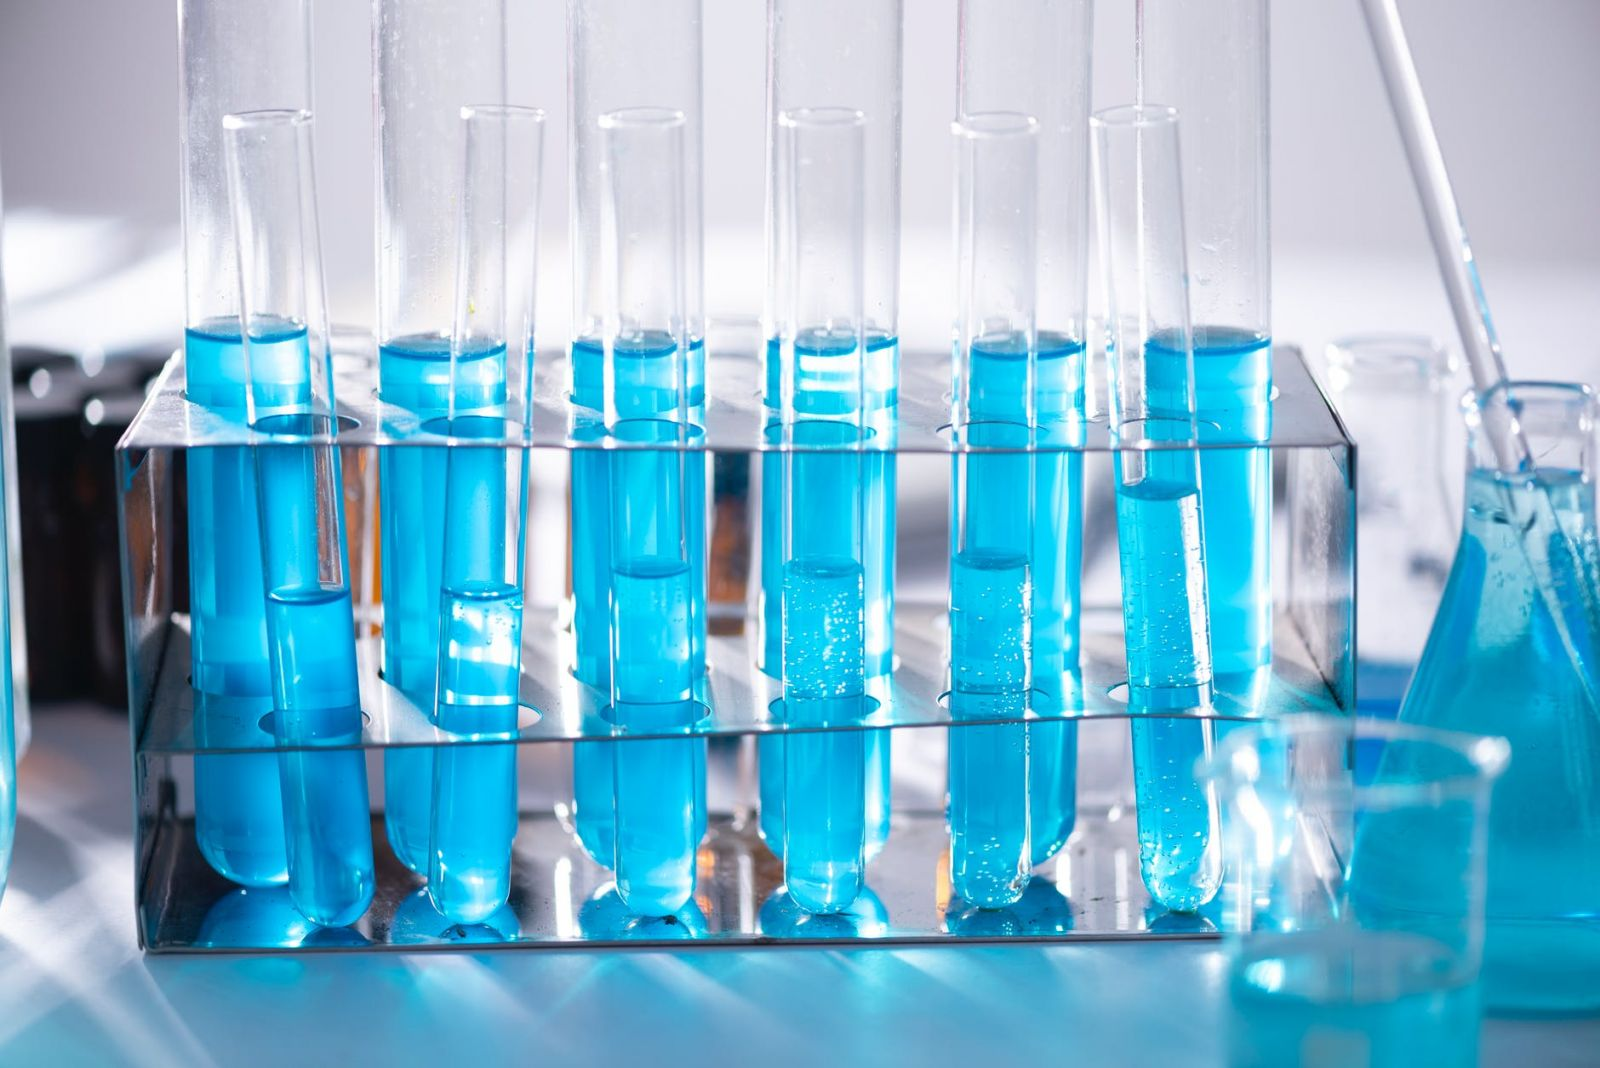 Test tubes for sensory analysis